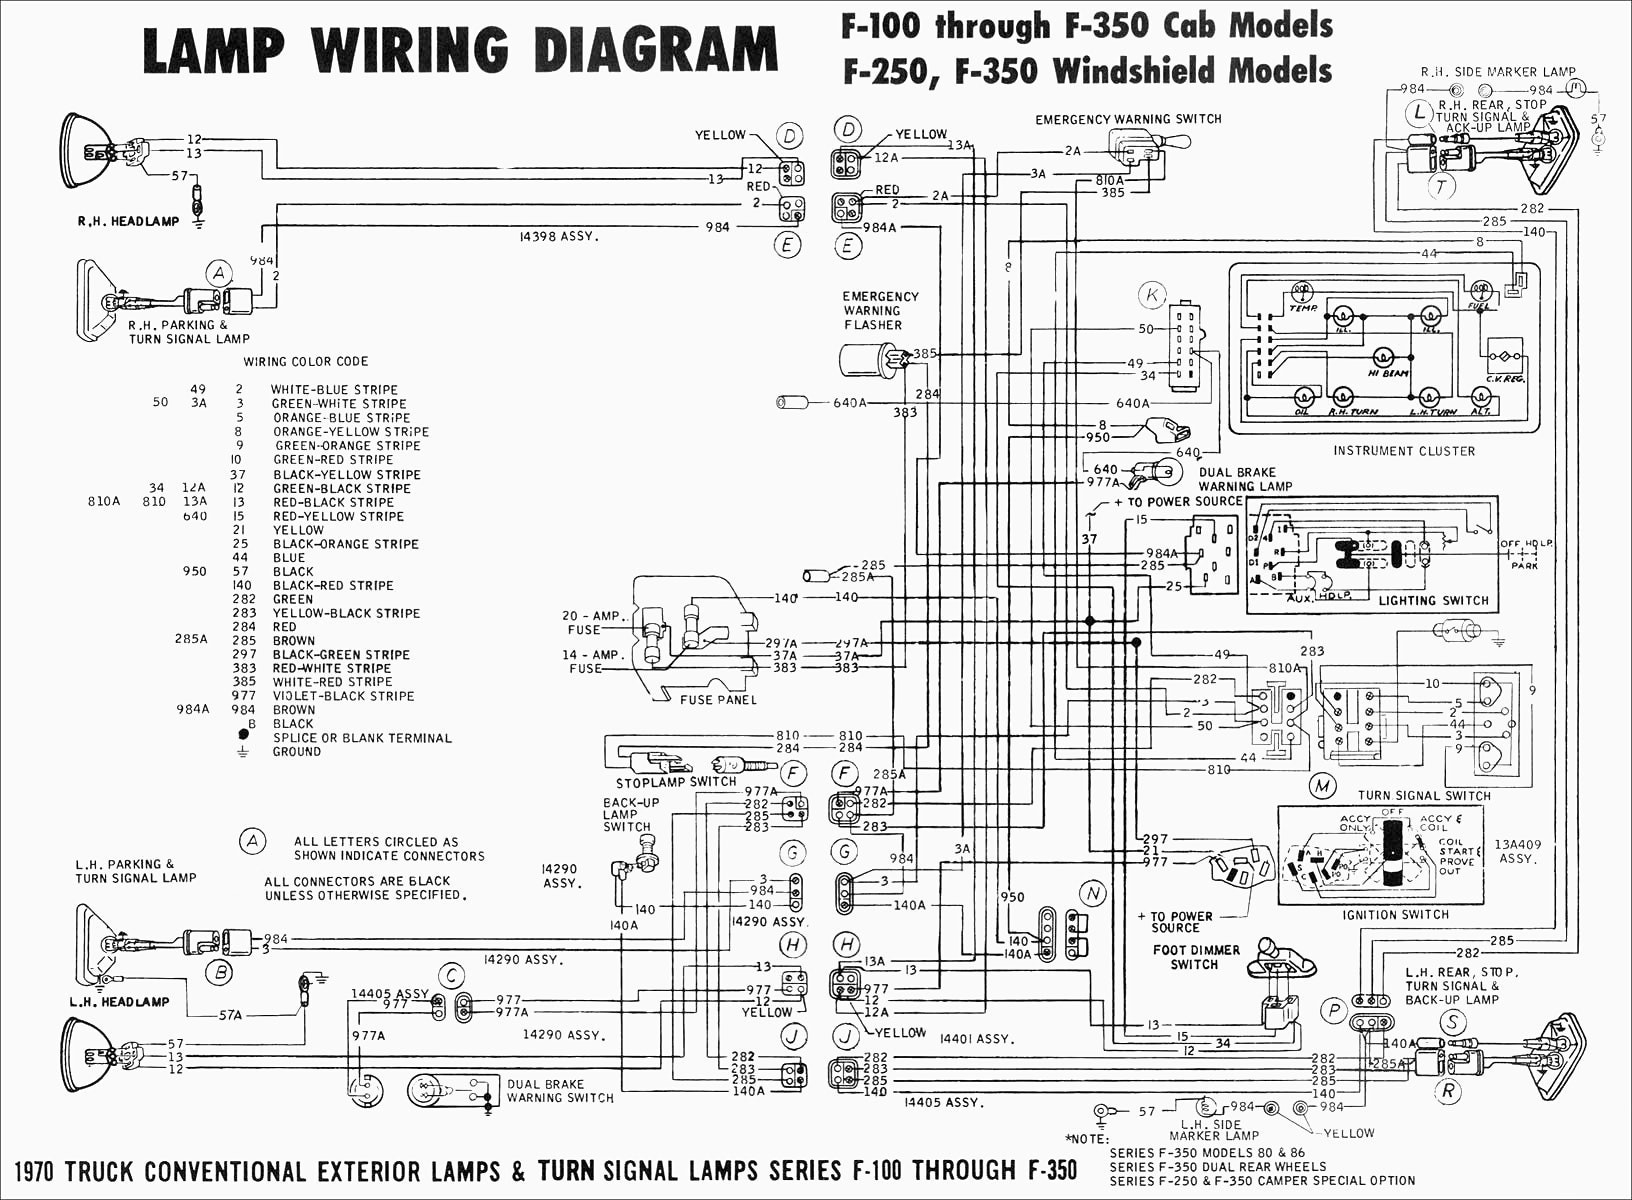 Wiring Diagram For Brake Light Switch Refrence My Brake Lights Dont Work I Changed The Switch And Now None Light